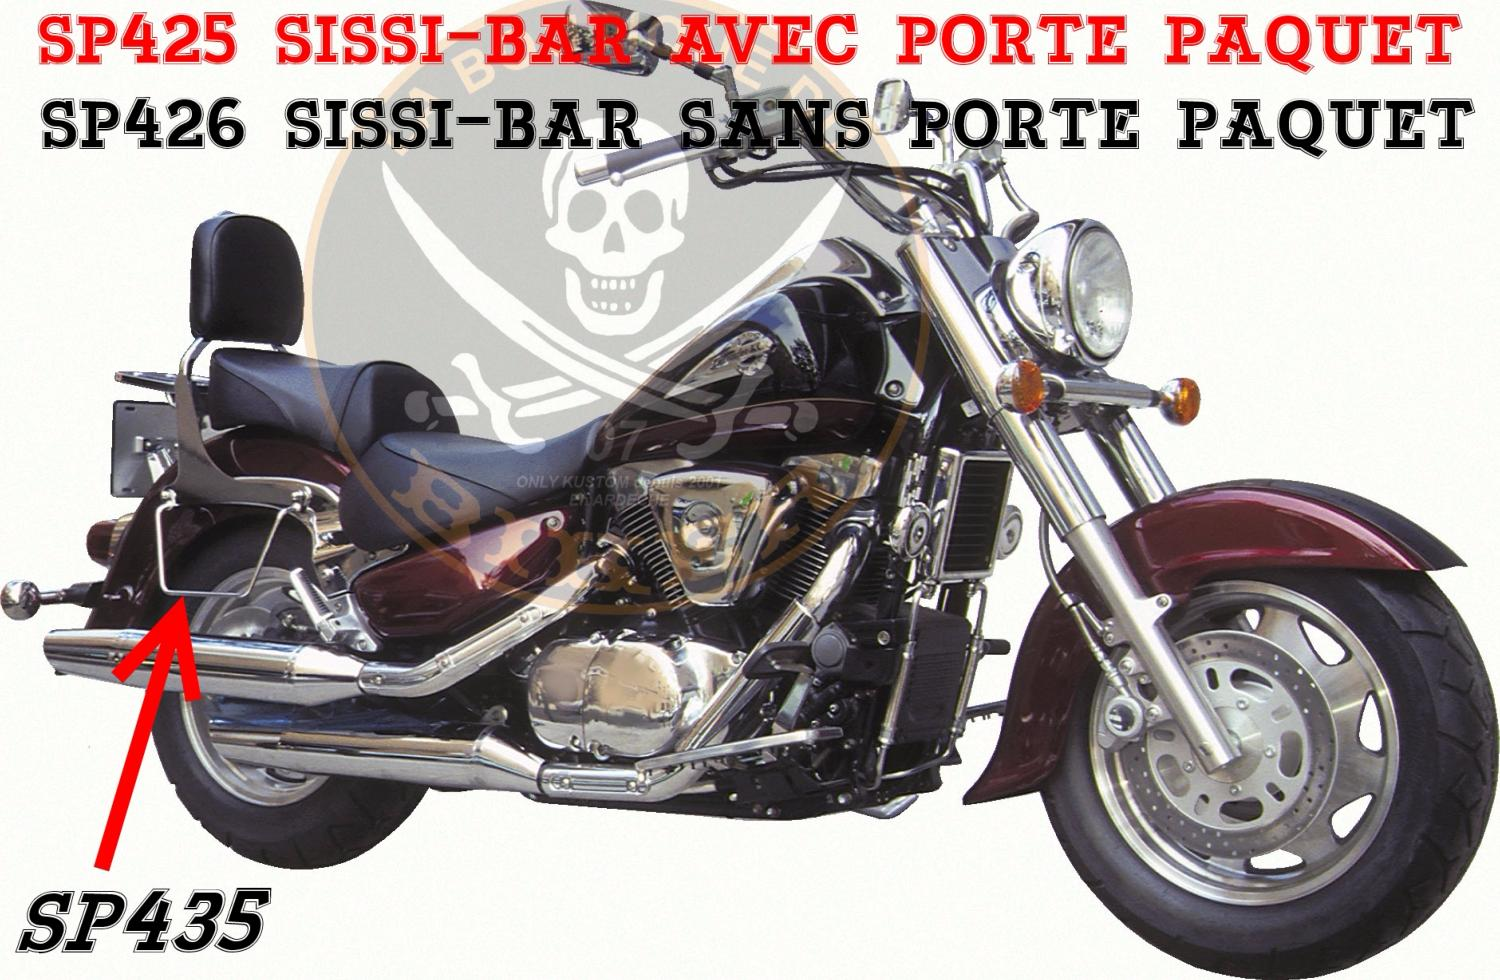 porte paquet suzuki vl1500 lc intruder c1500 jusqua 2009 special top case chrome sp618tc. Black Bedroom Furniture Sets. Home Design Ideas